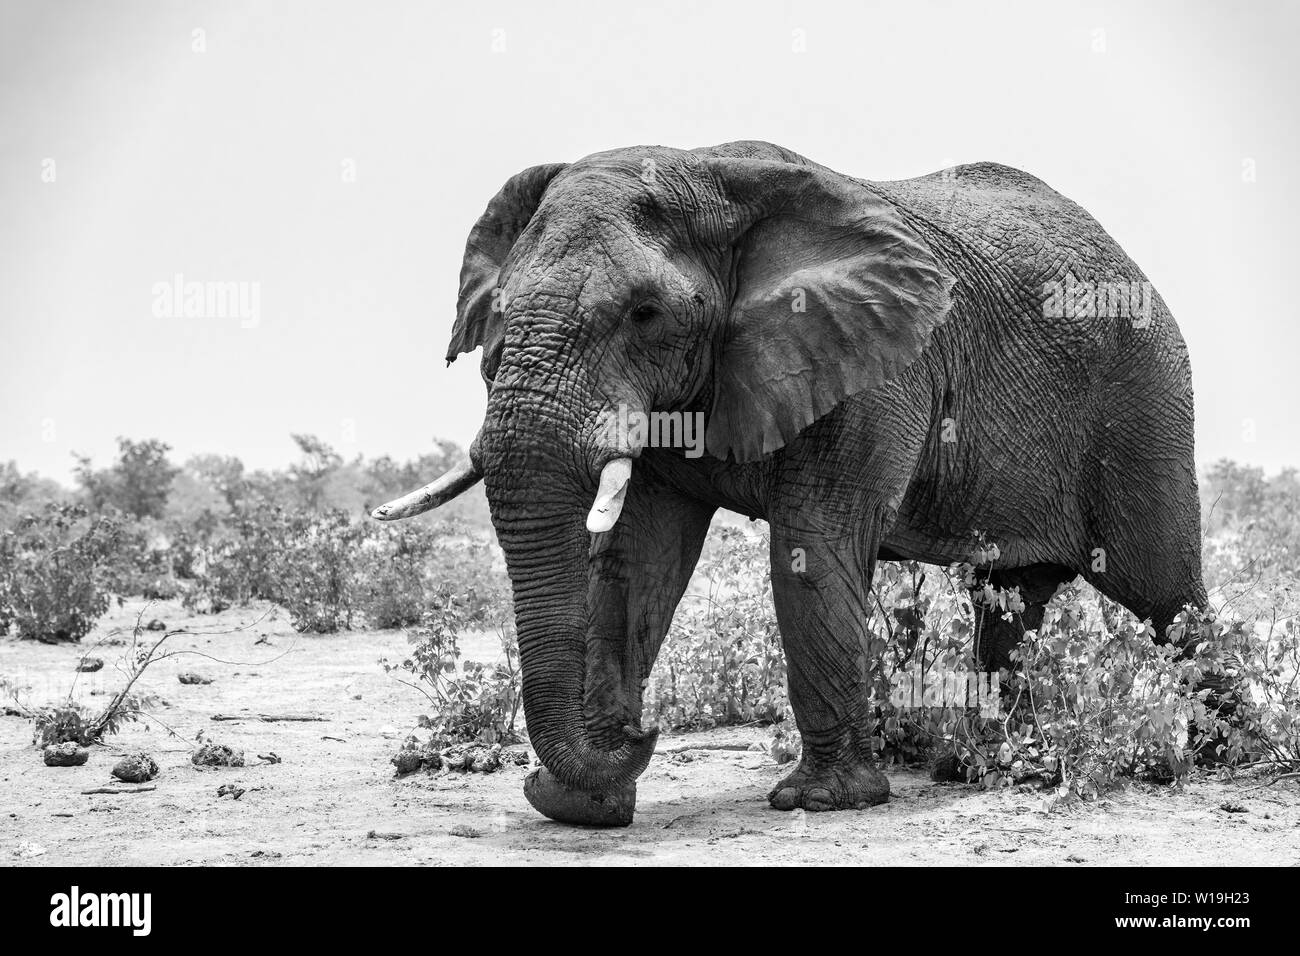 African Bush Elephant - Loxodonta africana, iconic member of African big five, Safari in Etosha, Namibia. - Stock Image